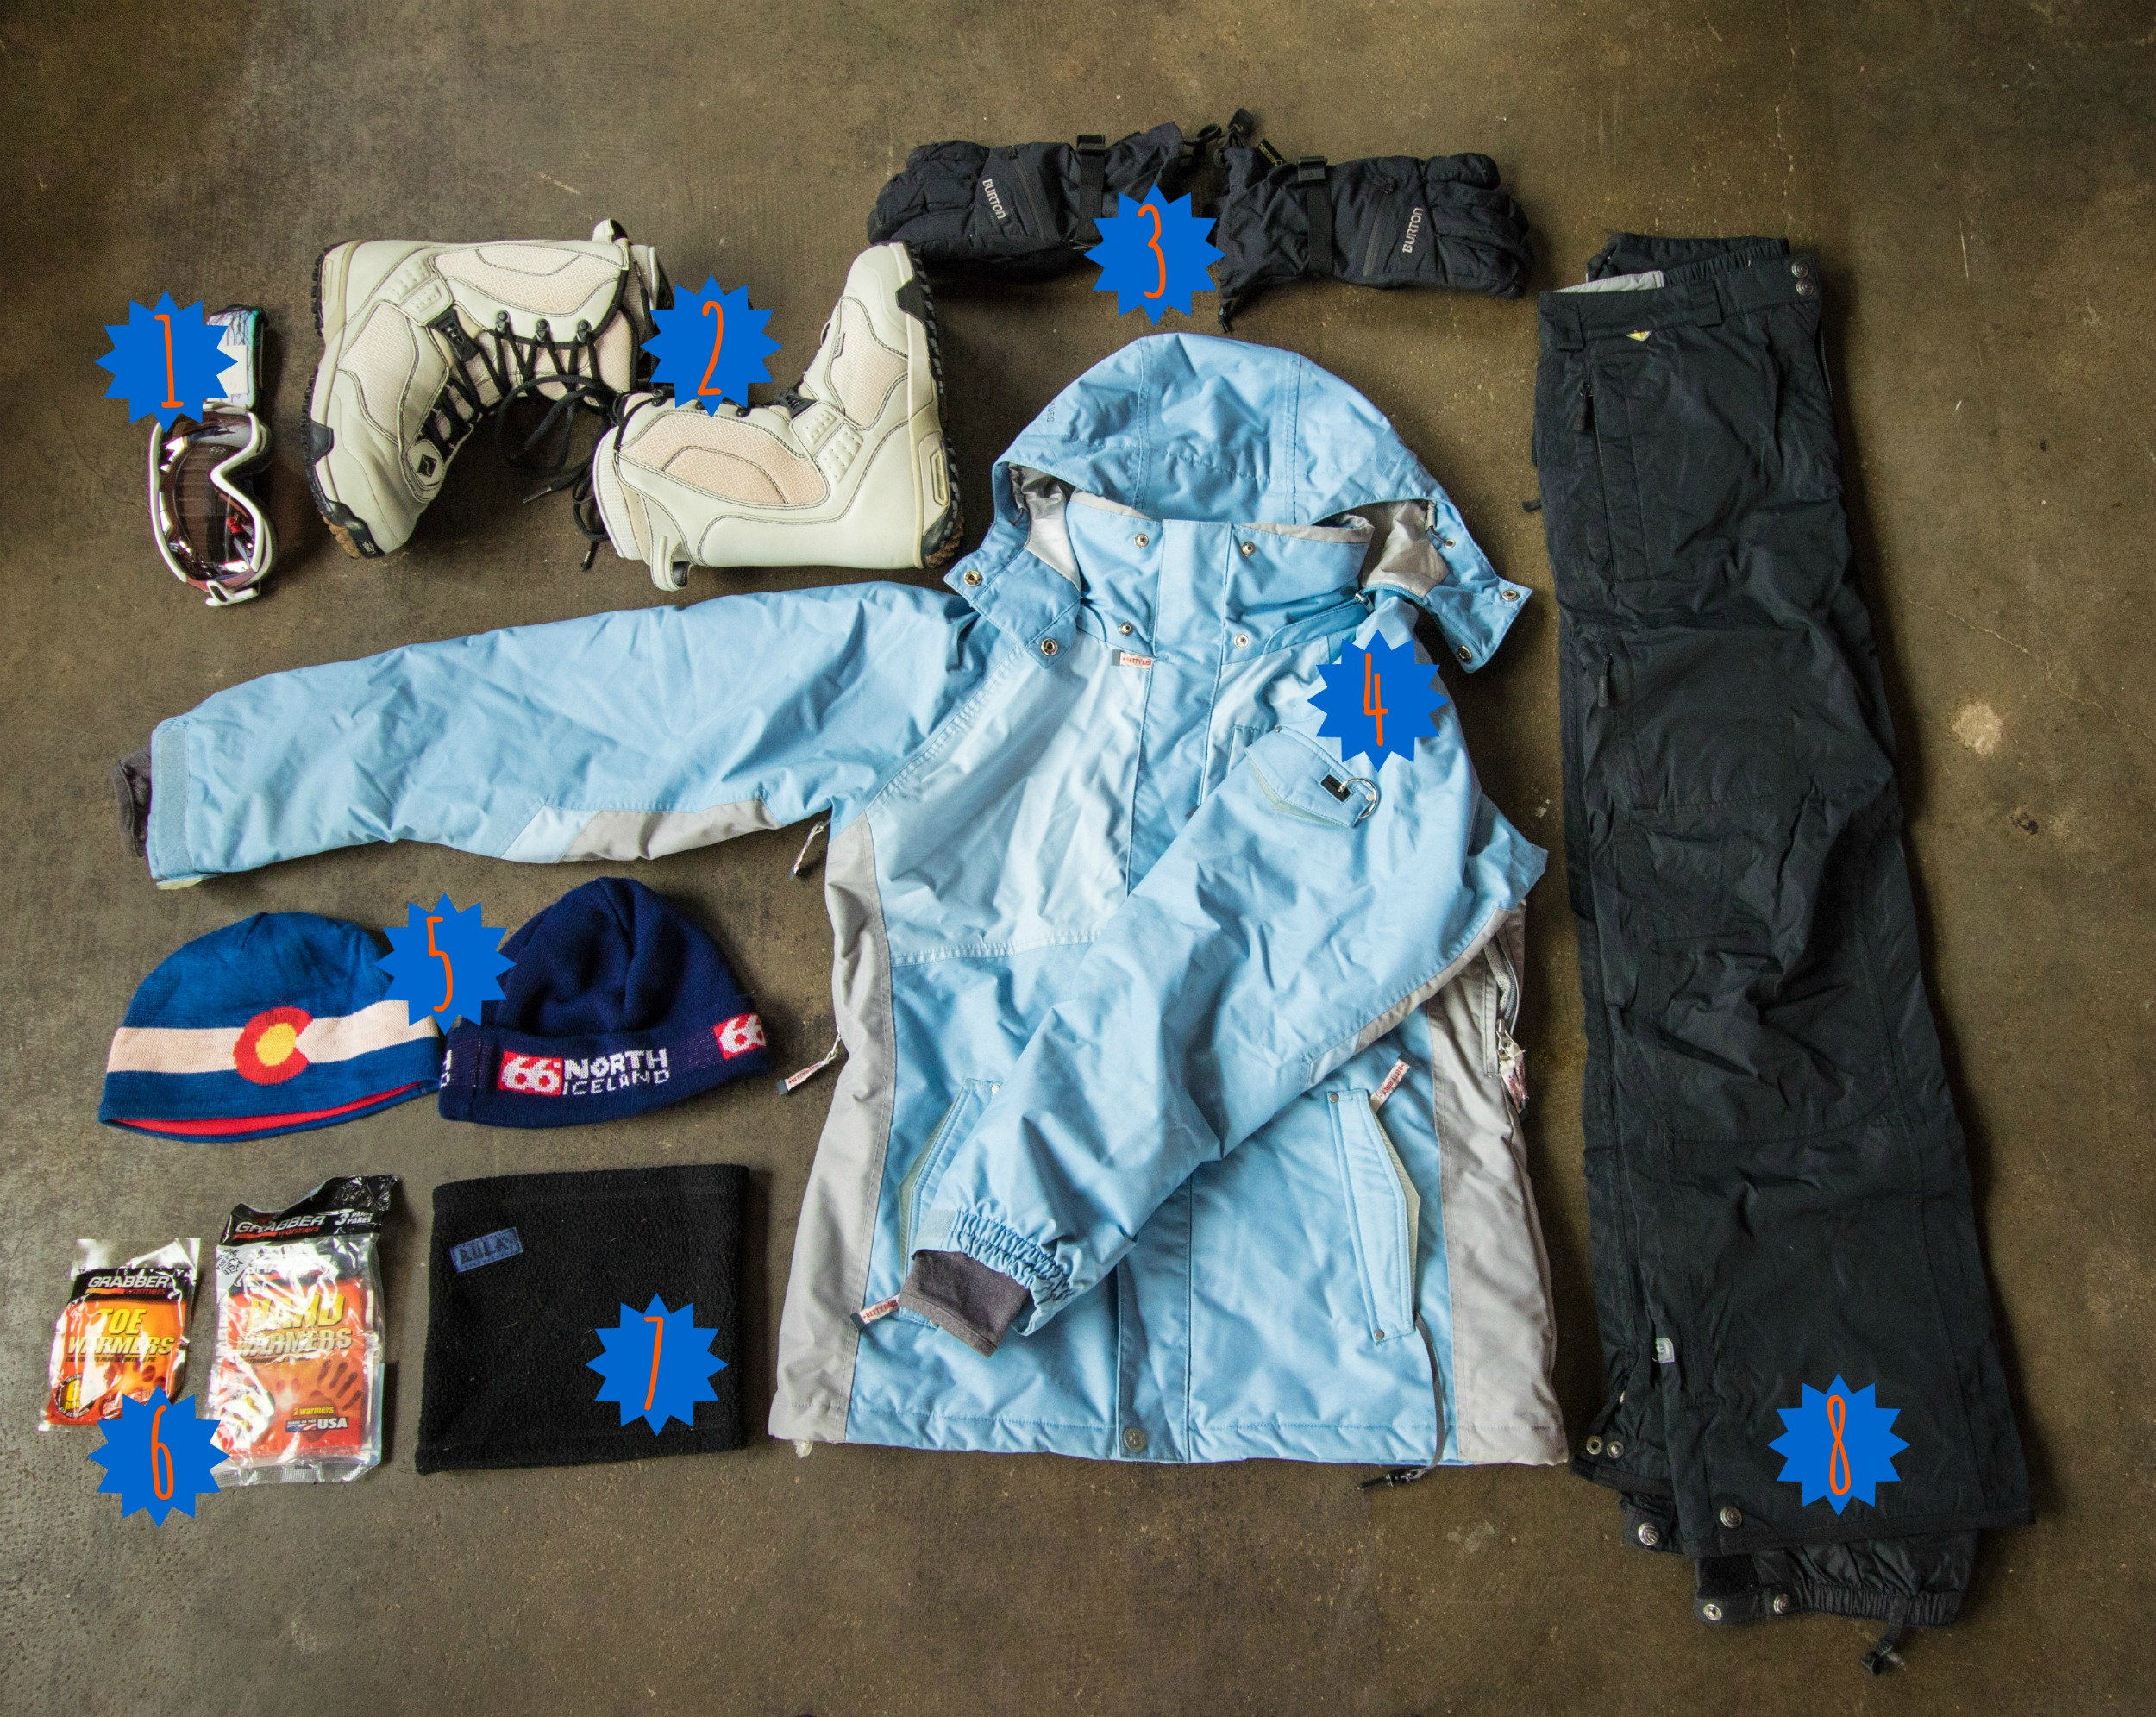 Make sure you know what to pack for a ski weekend! Outer layers are key!